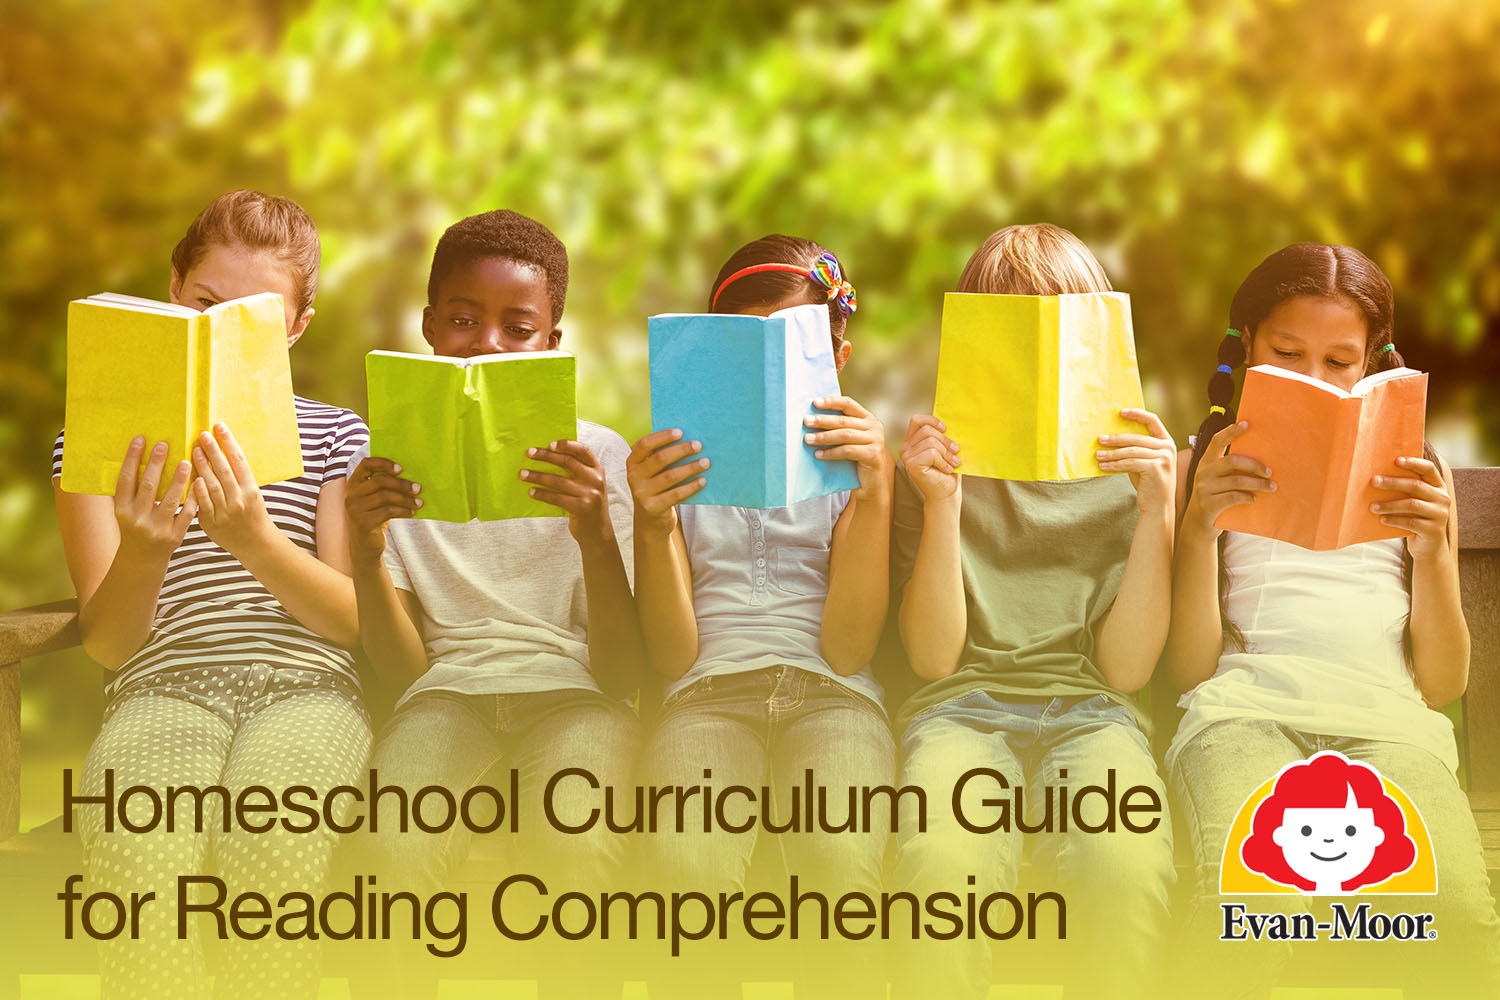 Homeschool Curriculum Guide for Reading Comprehension - The